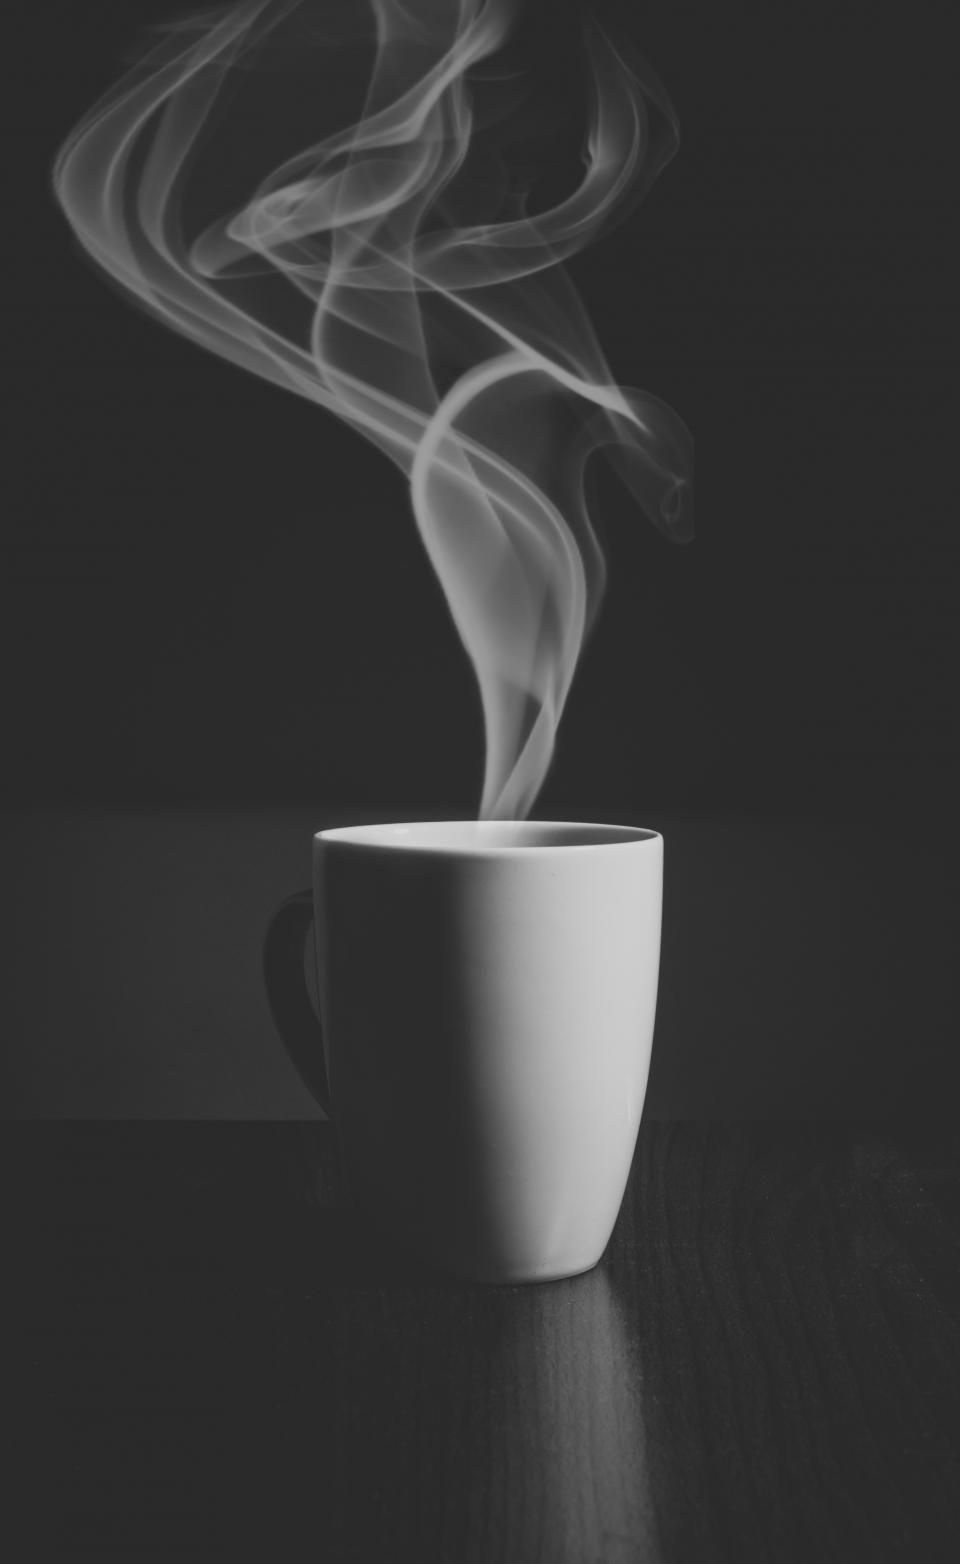 Coffee Cup Steam Free Stock Photo Coffee Cup Photo Morning Coffee Cups Free Coffee Wallpaper tea cup book garlands leaves